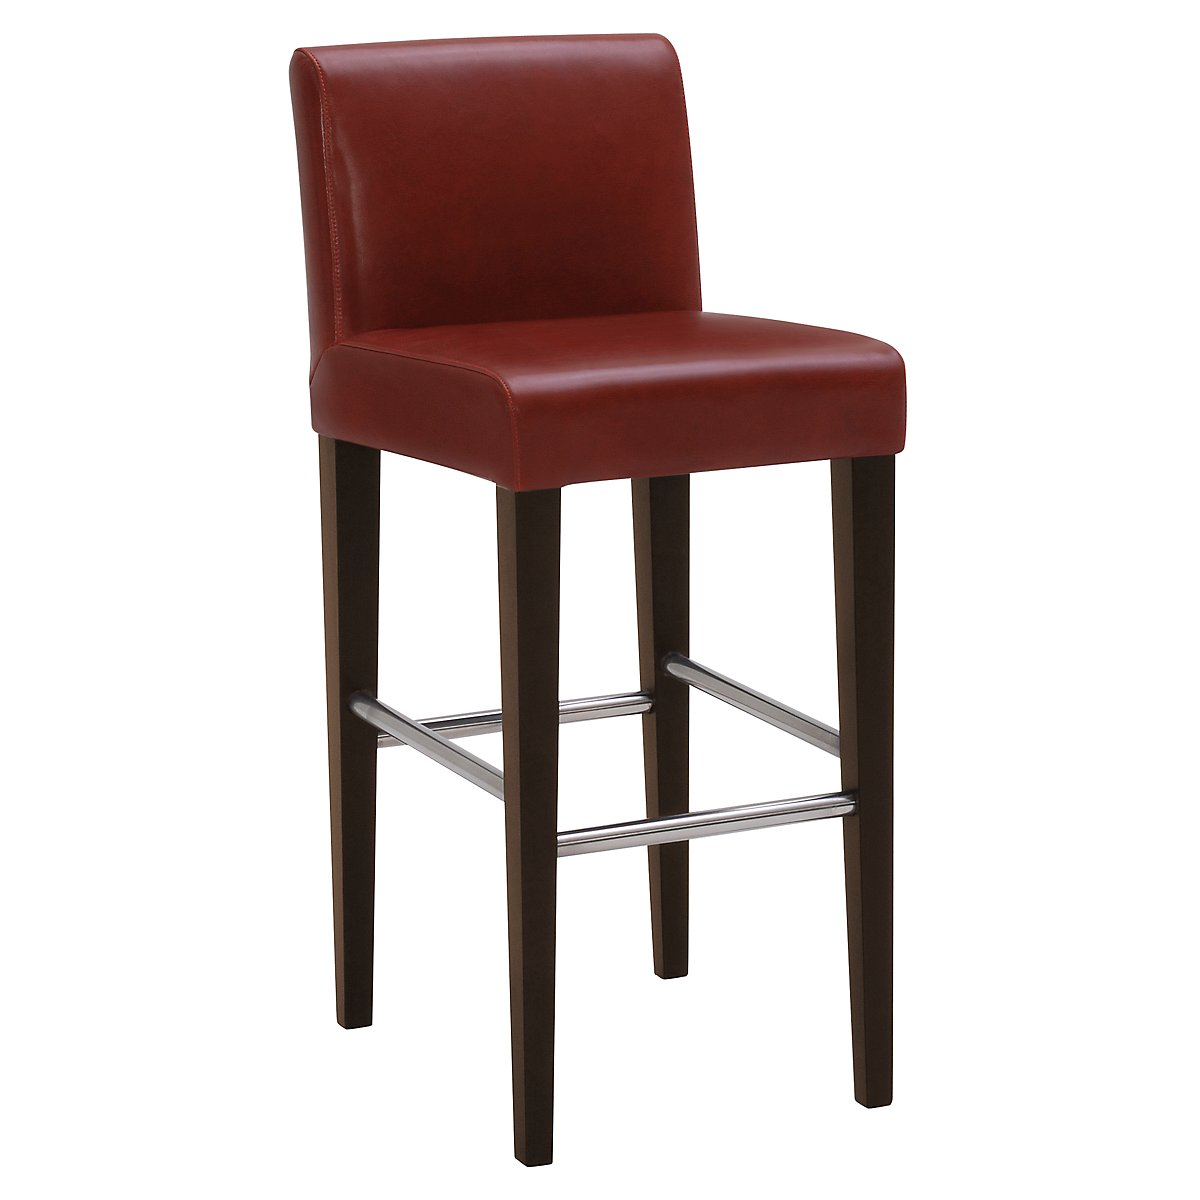 "Kyle Red Bonded Leather 30"" Upholstered Barstool"